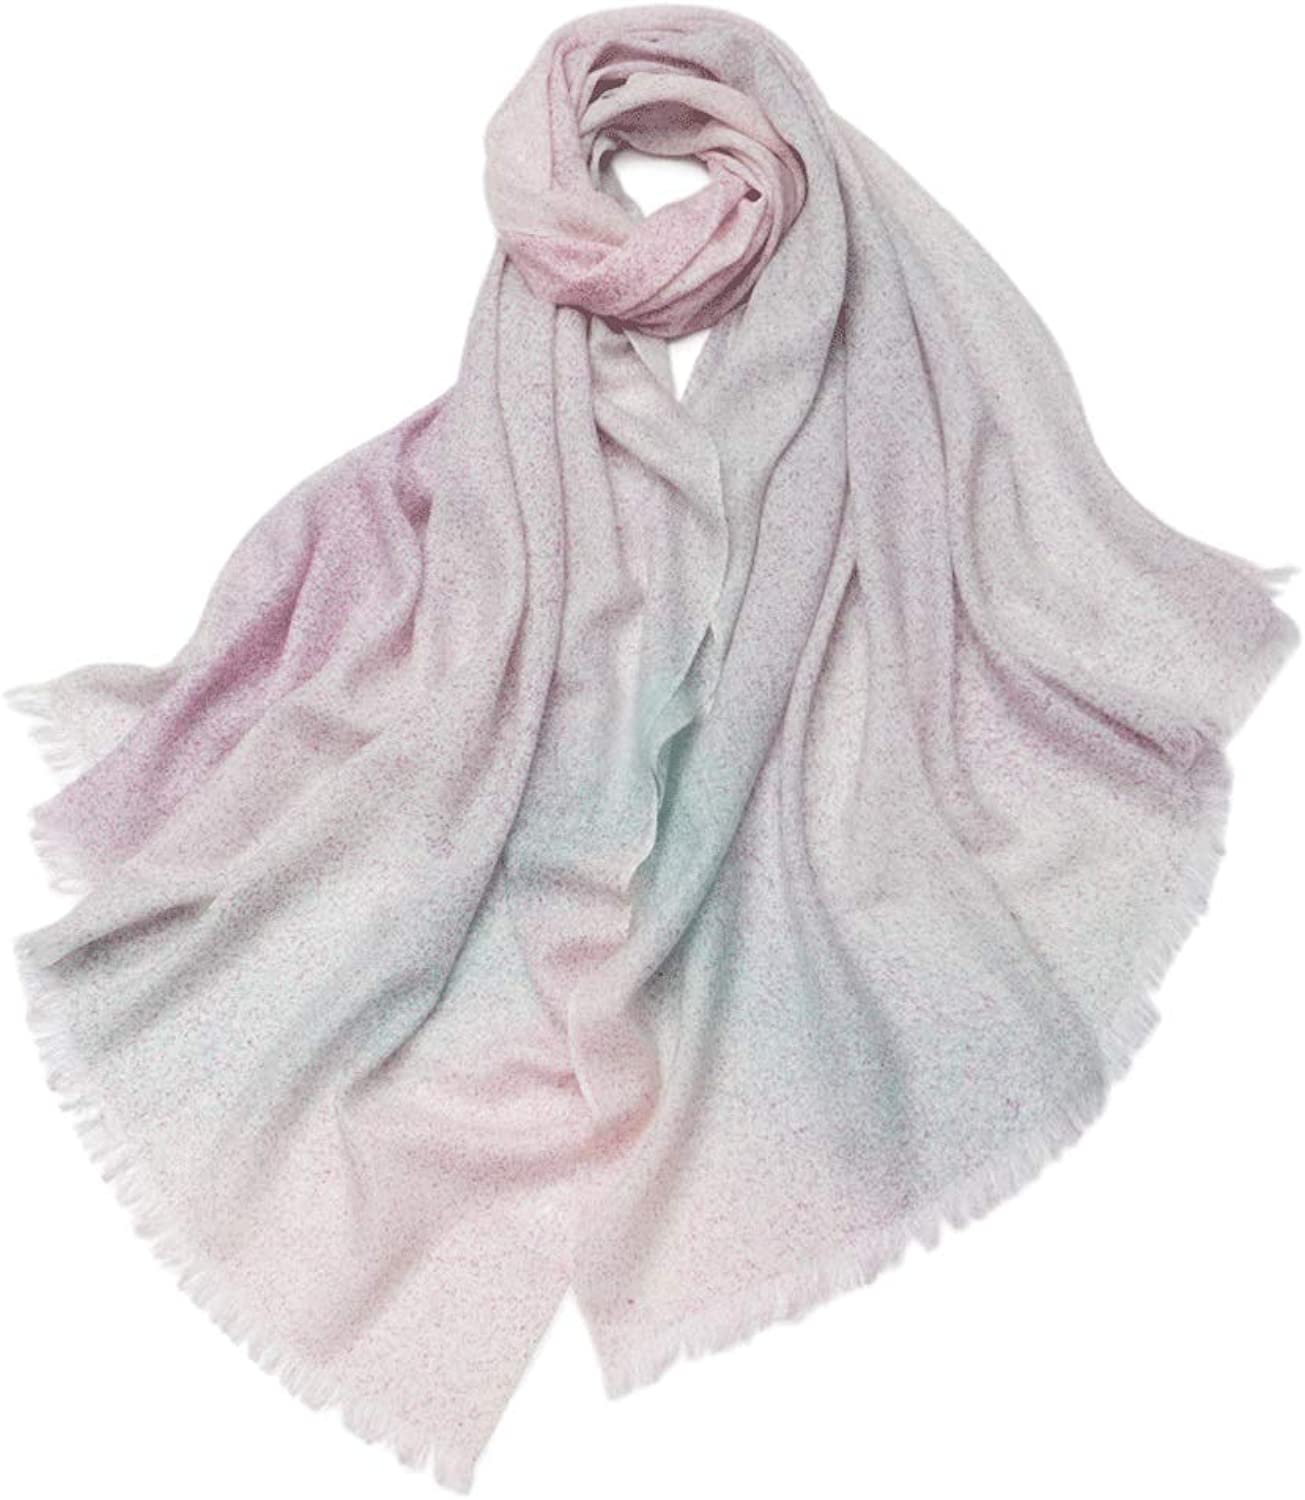 CHX Scarf Winter Keep Warm Woman Soft color Inkjet Large Shawl 200cm×70cm V (color   Purple Gradient)